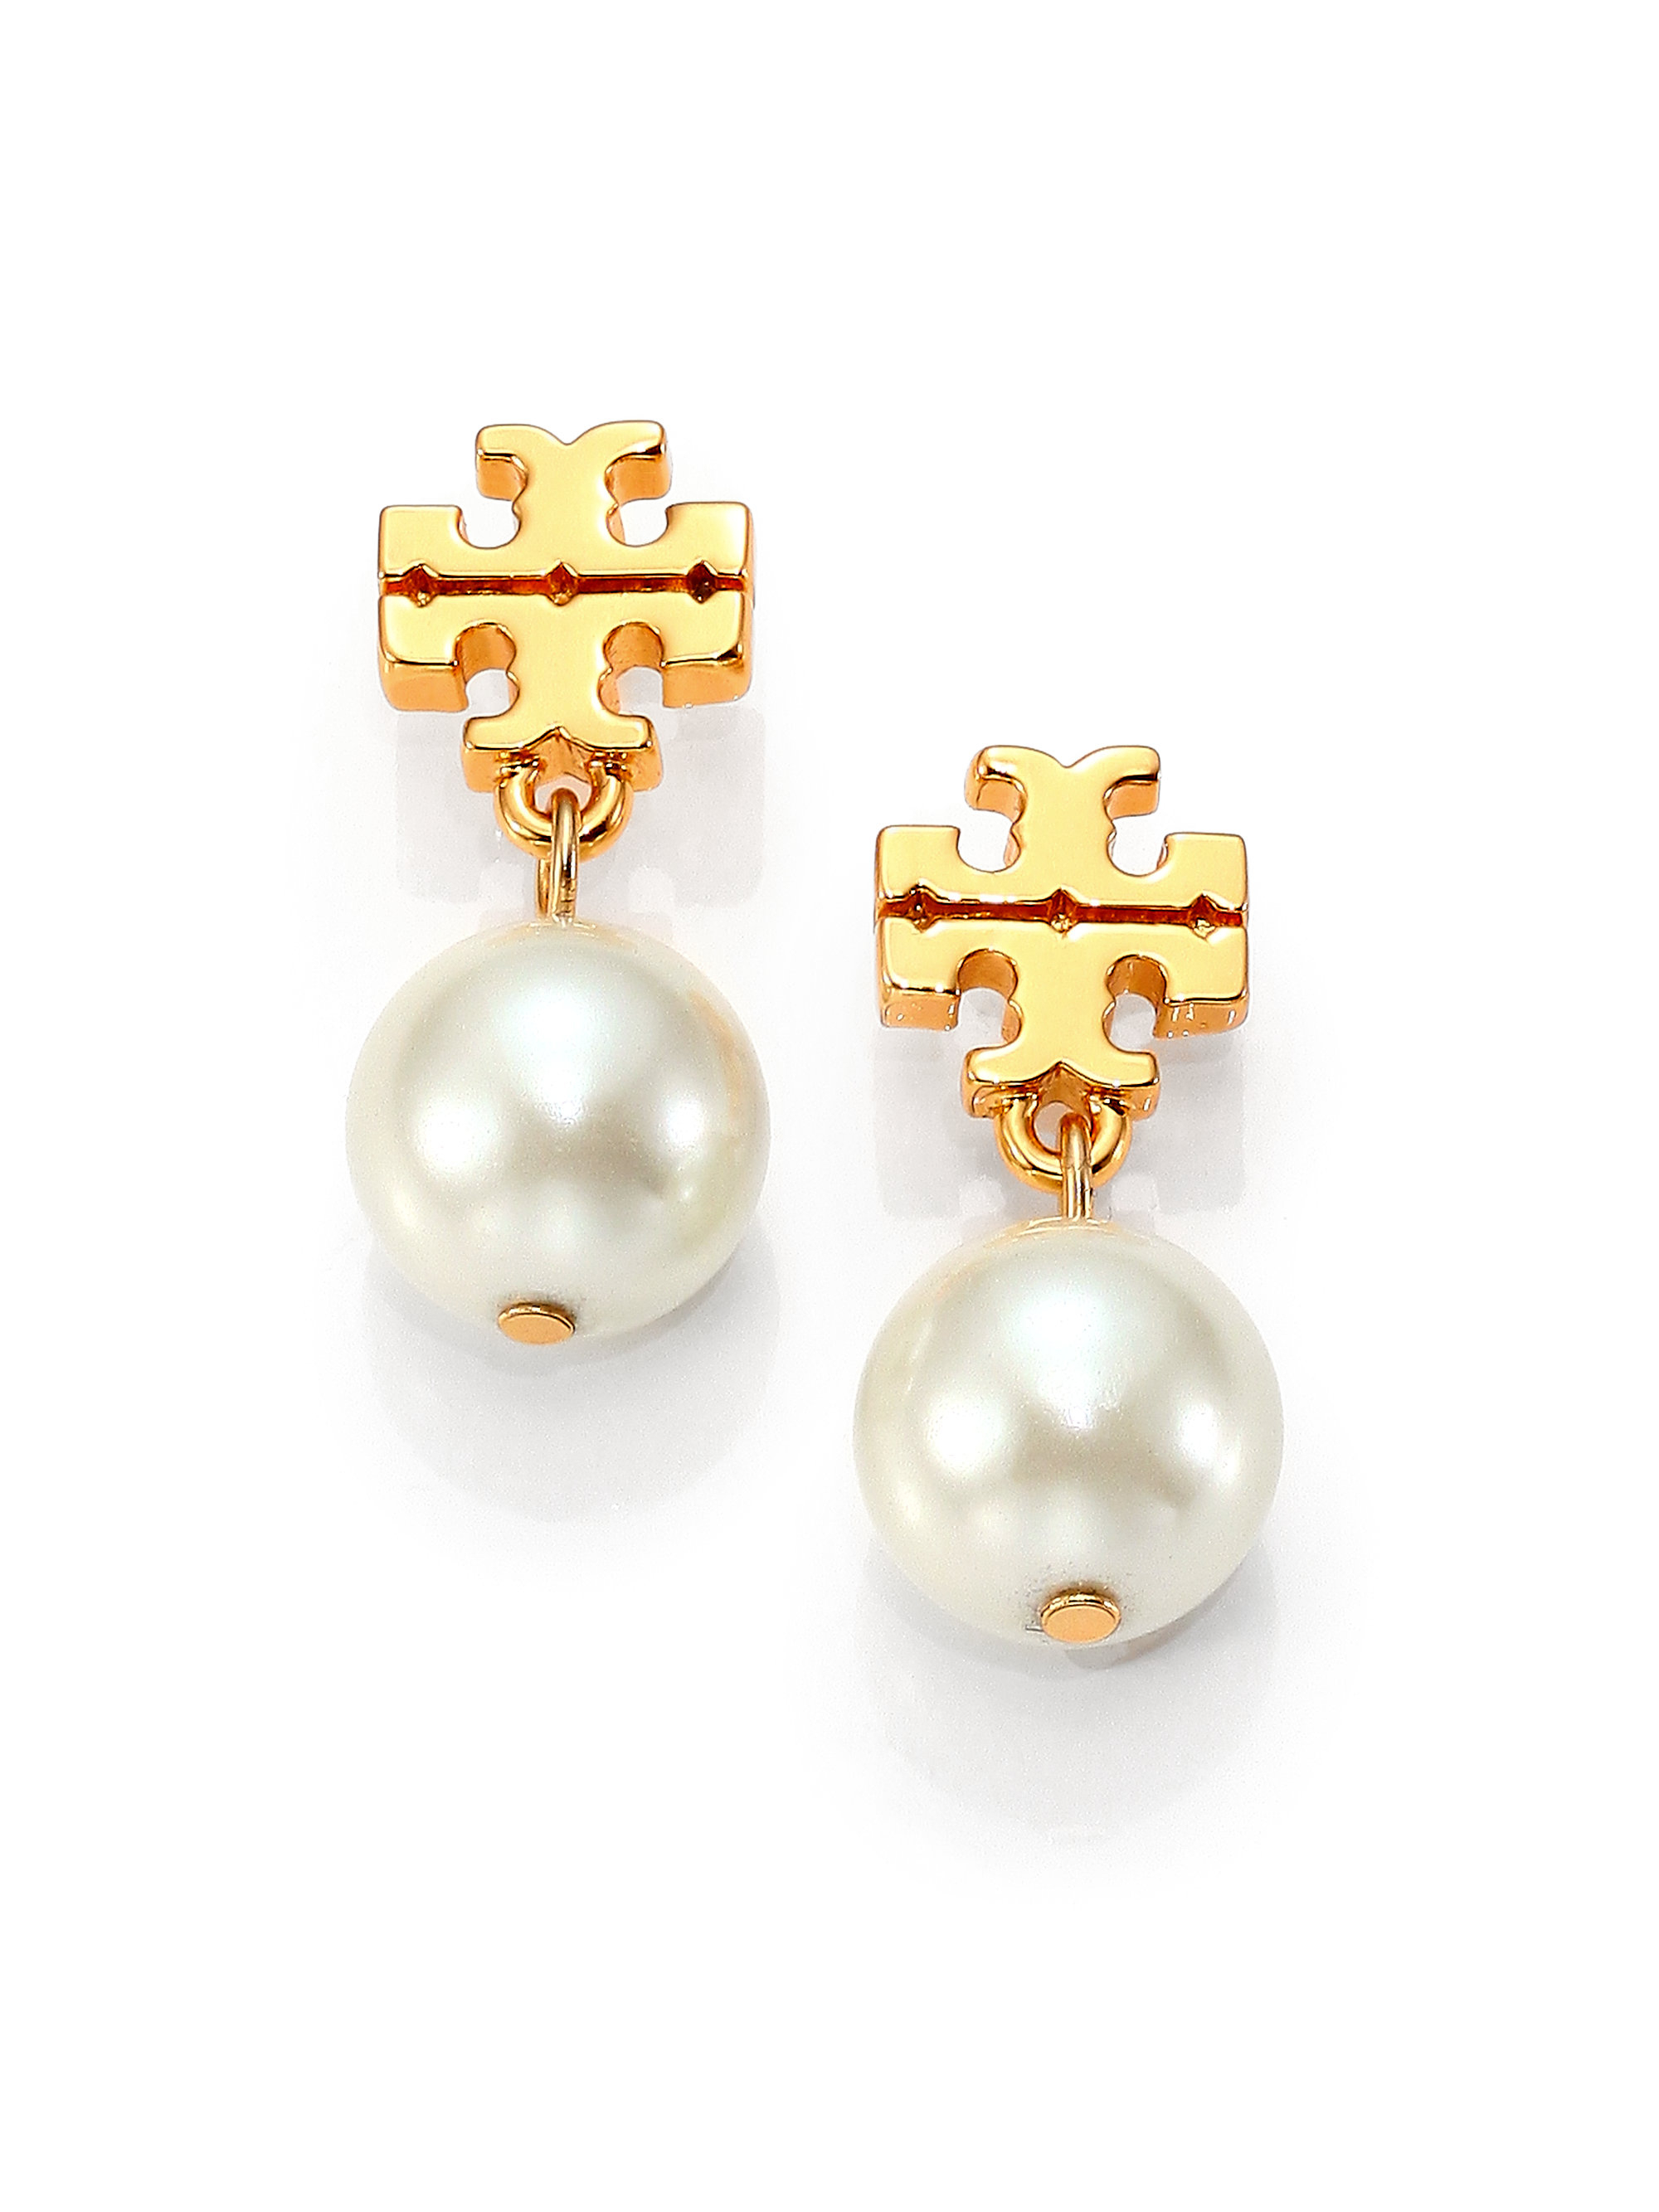 aff07f80243e9 Tory Burch Rose Gold Pearl Earrings - HD Image Flower and Rose ...